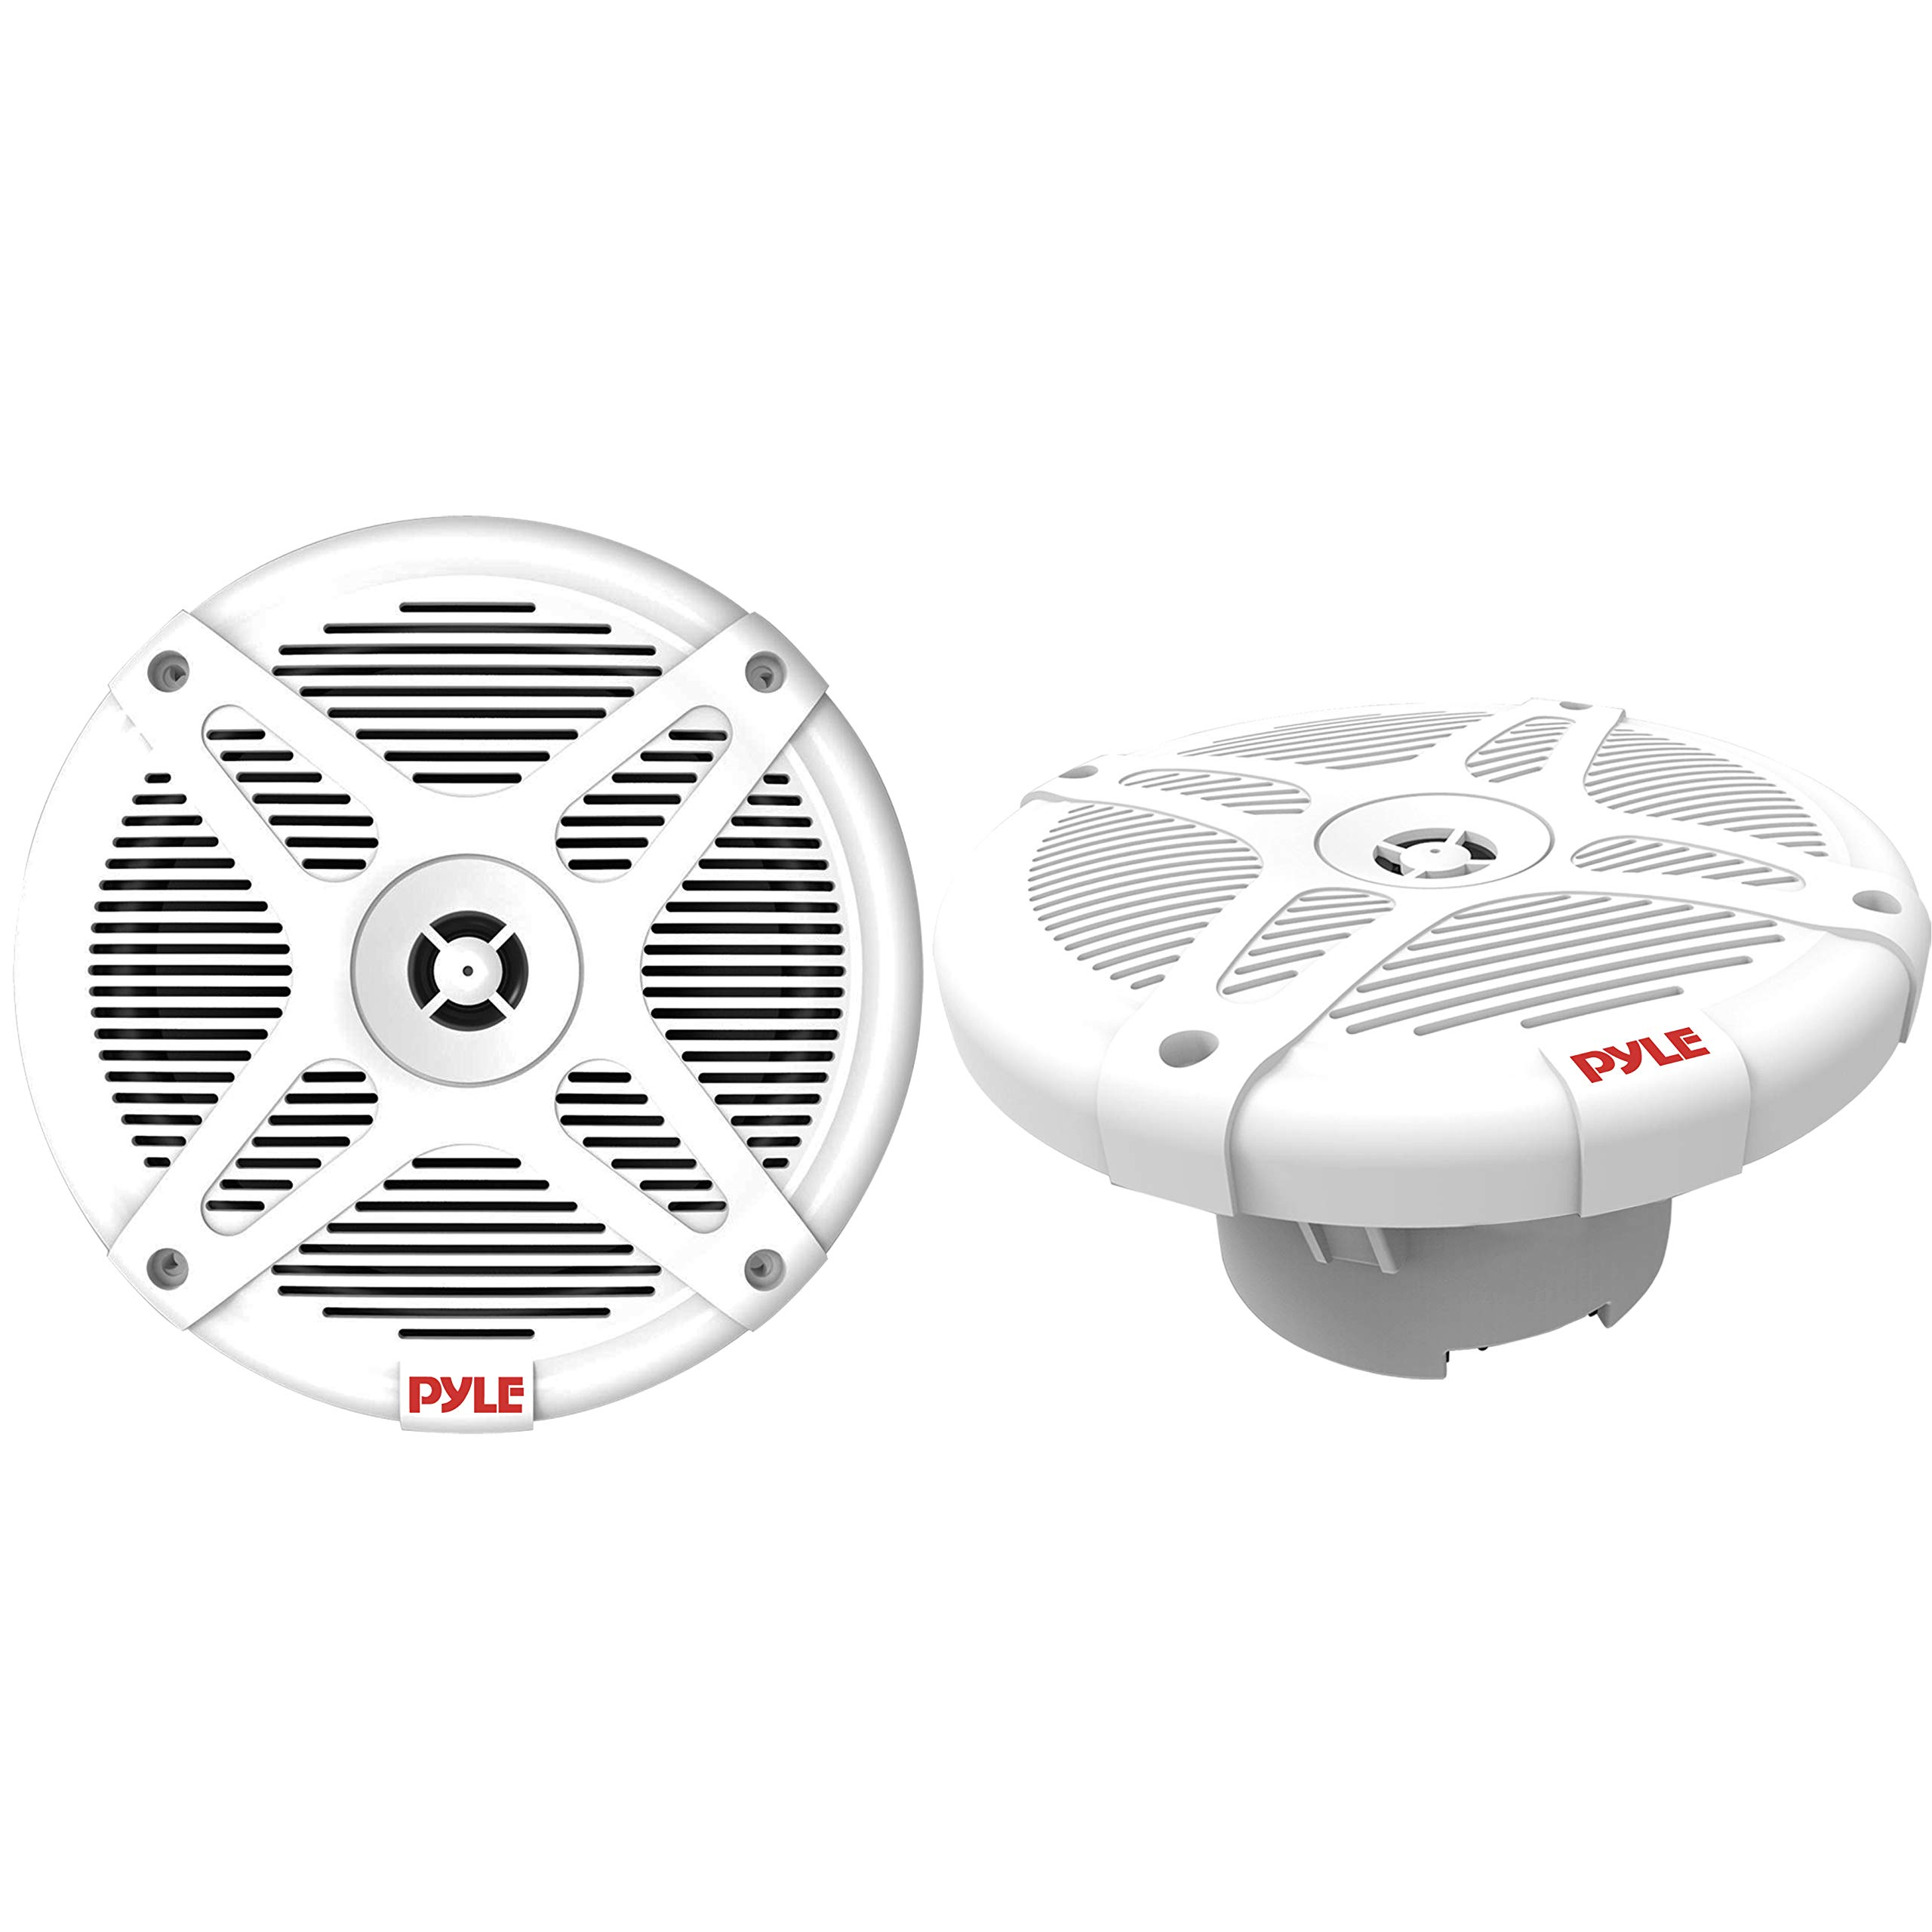 6.5 inch Dual Marine Speakers - Waterproof and Bluetooth Compatible 2-Way Coaxial Range Amplified Audio Stereo Sound System with Wireless RF Streaming and 600 Watt Power - 1 Pair - PLMRF65MW (White)